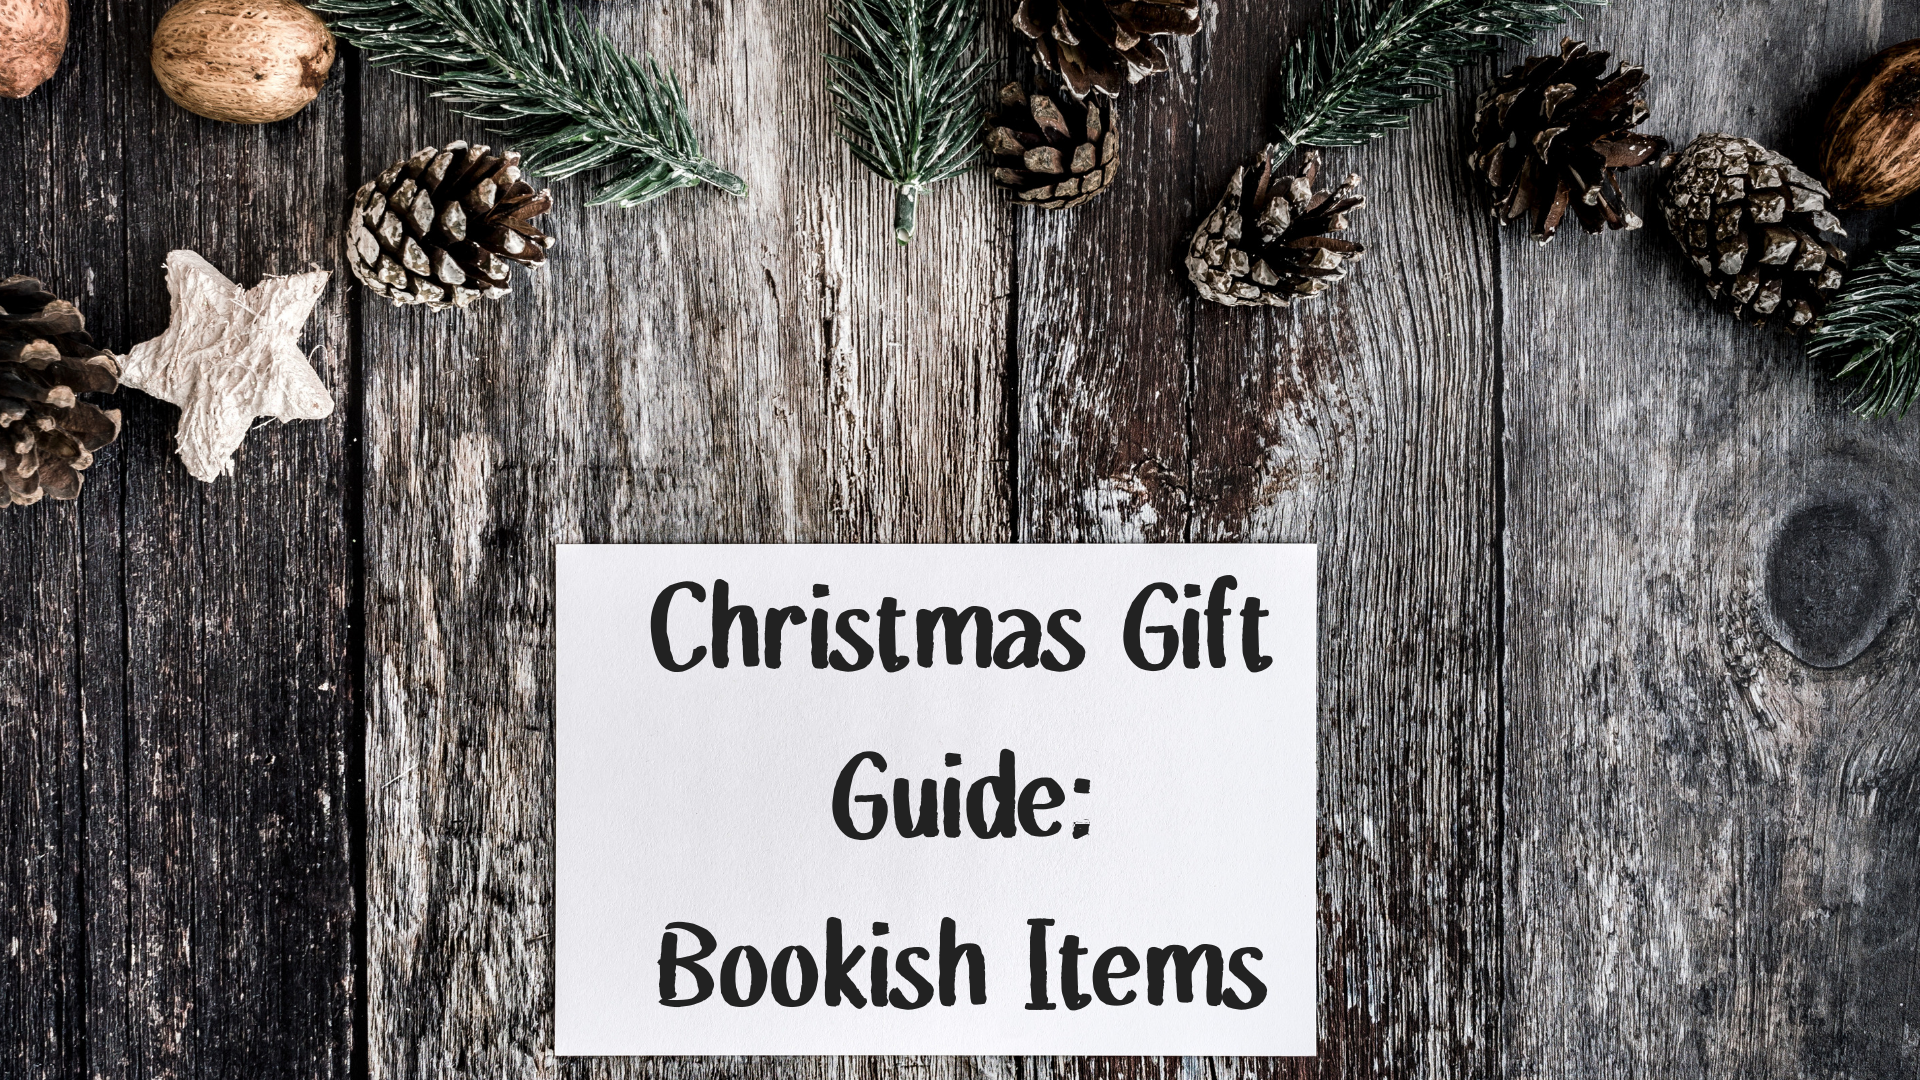 Christmas Gift Guide Bookish Items